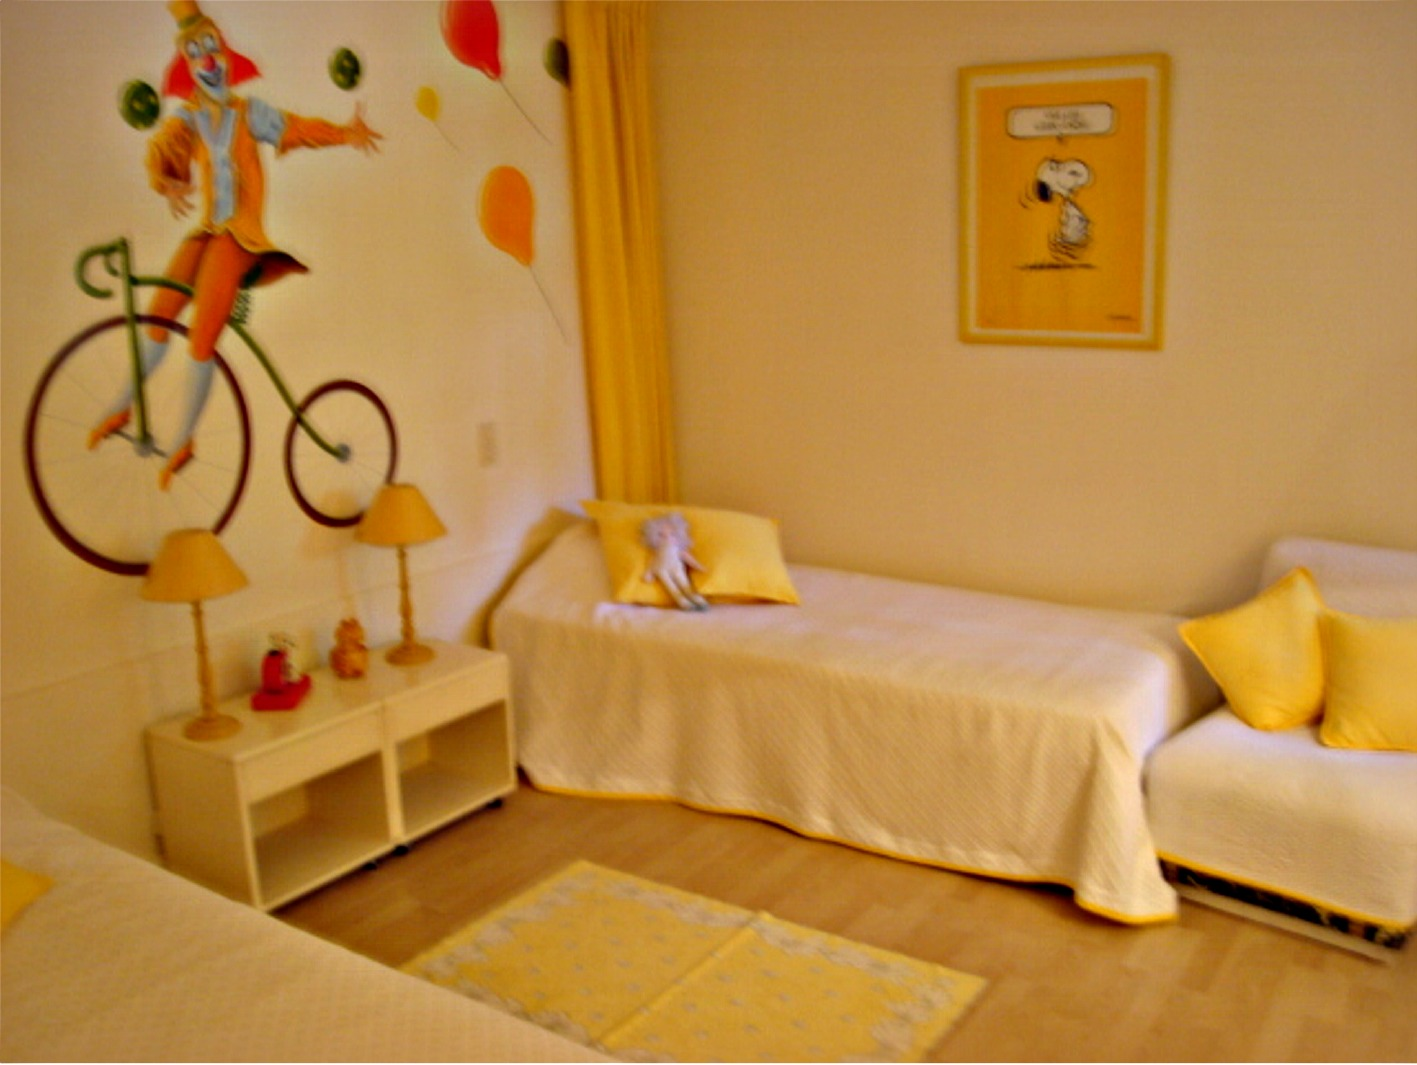 Mind space making your kid 39 s bedroom exciting - Children bedroom ideas ...